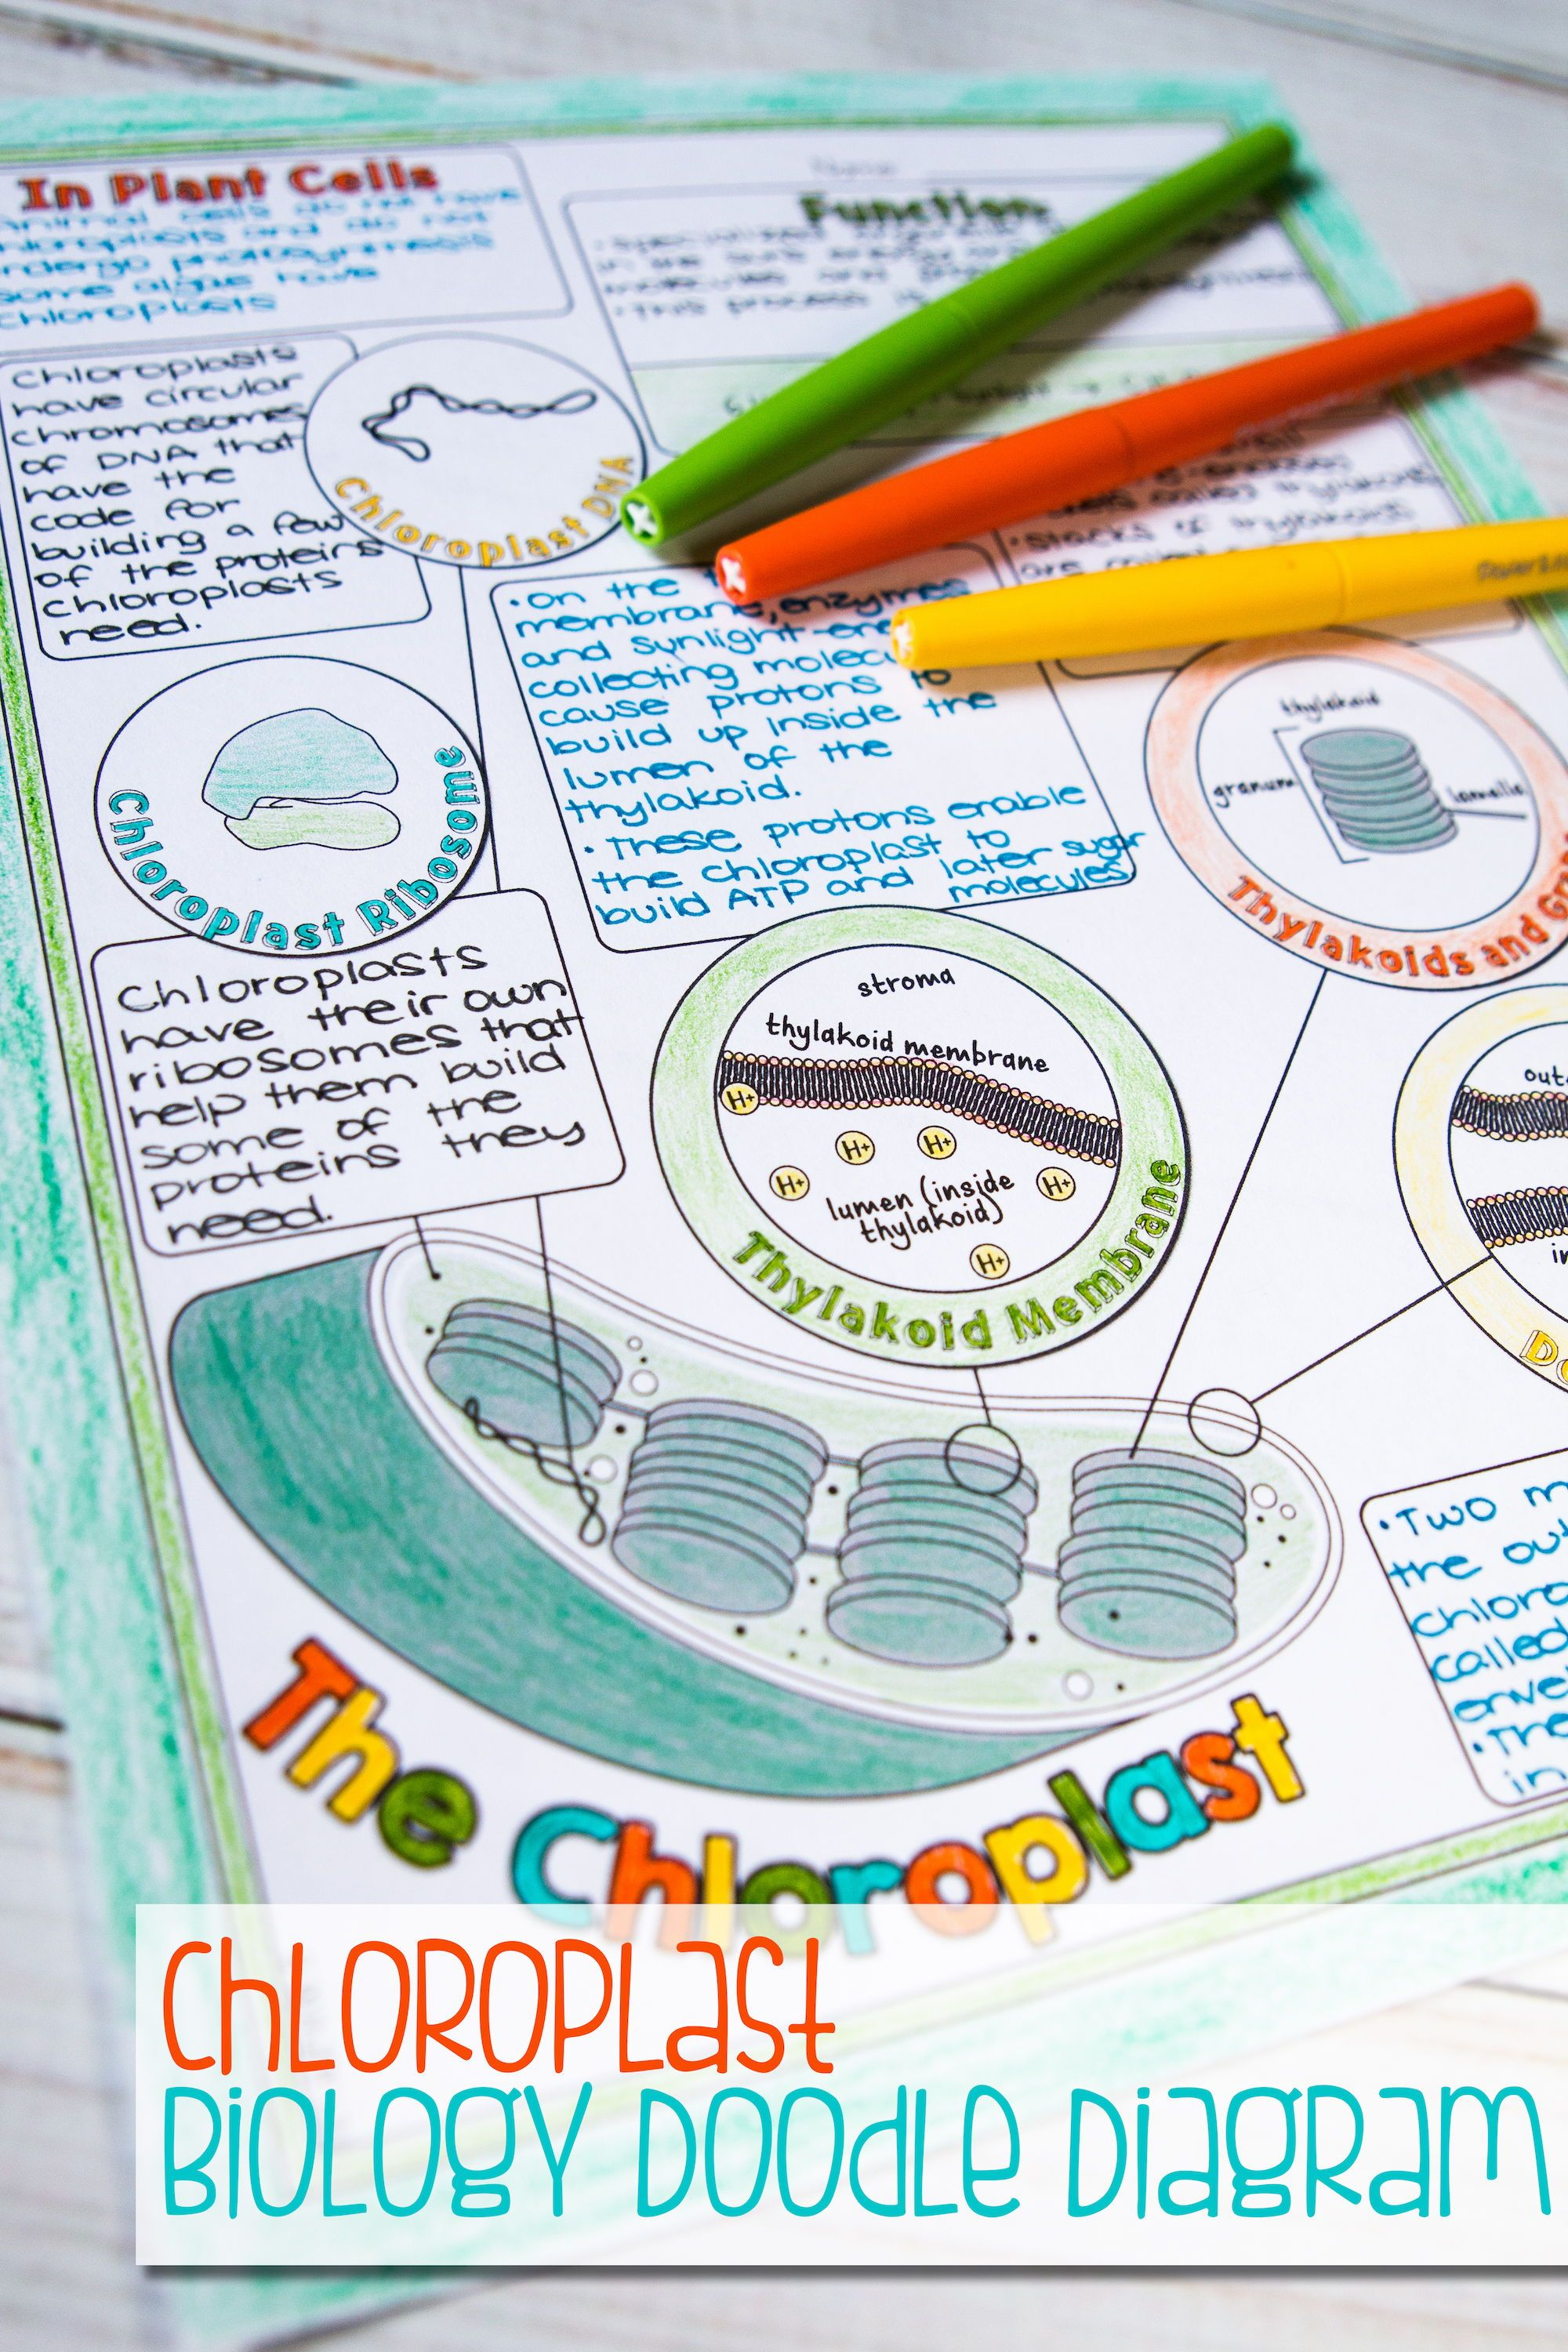 Nucleus Chloroplast And Mitochondrion Doodle Diagrams In